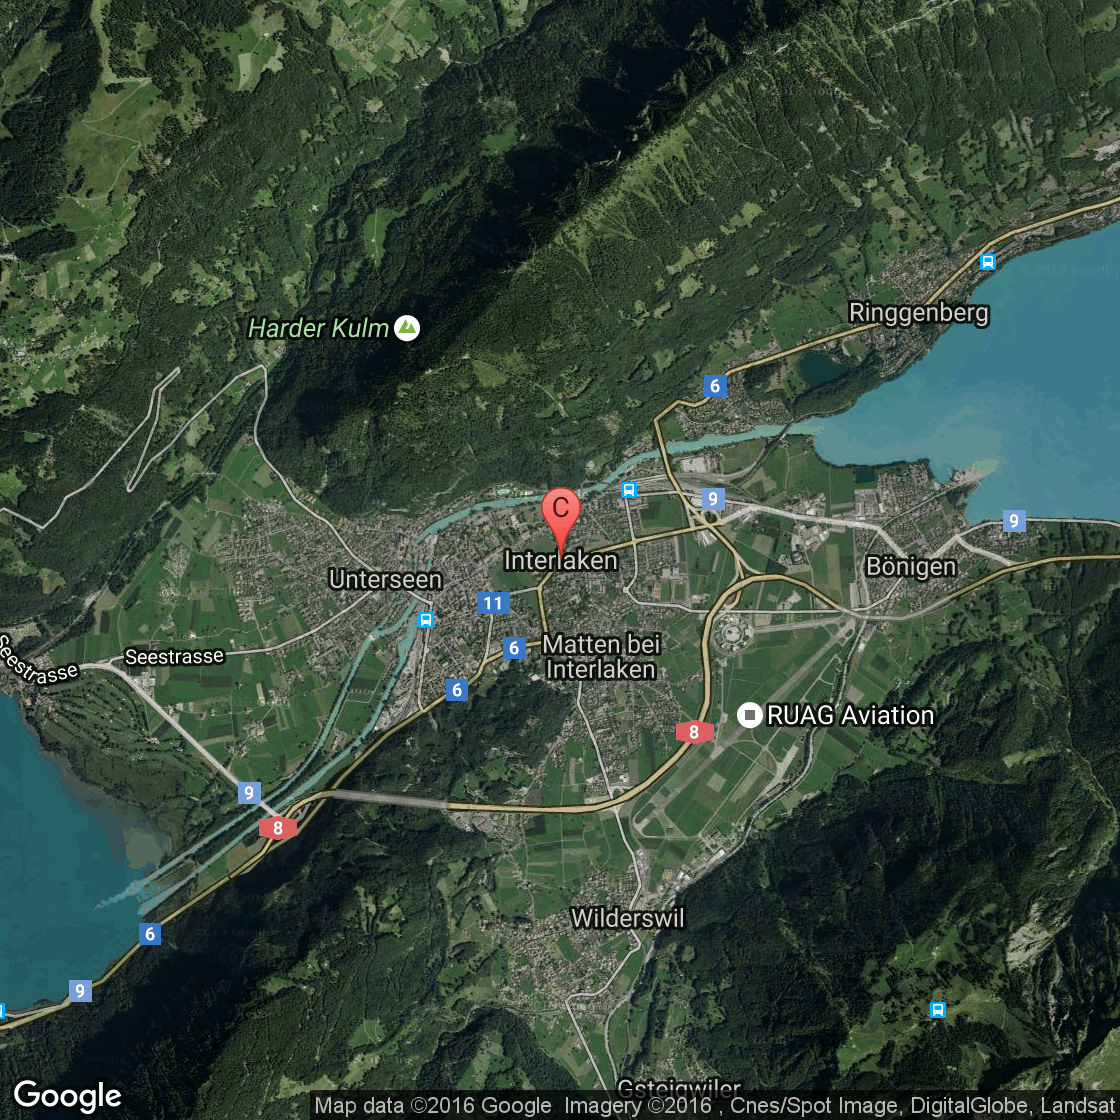 Hotels In Interlaken New York USA Today - Google map nyc hotels